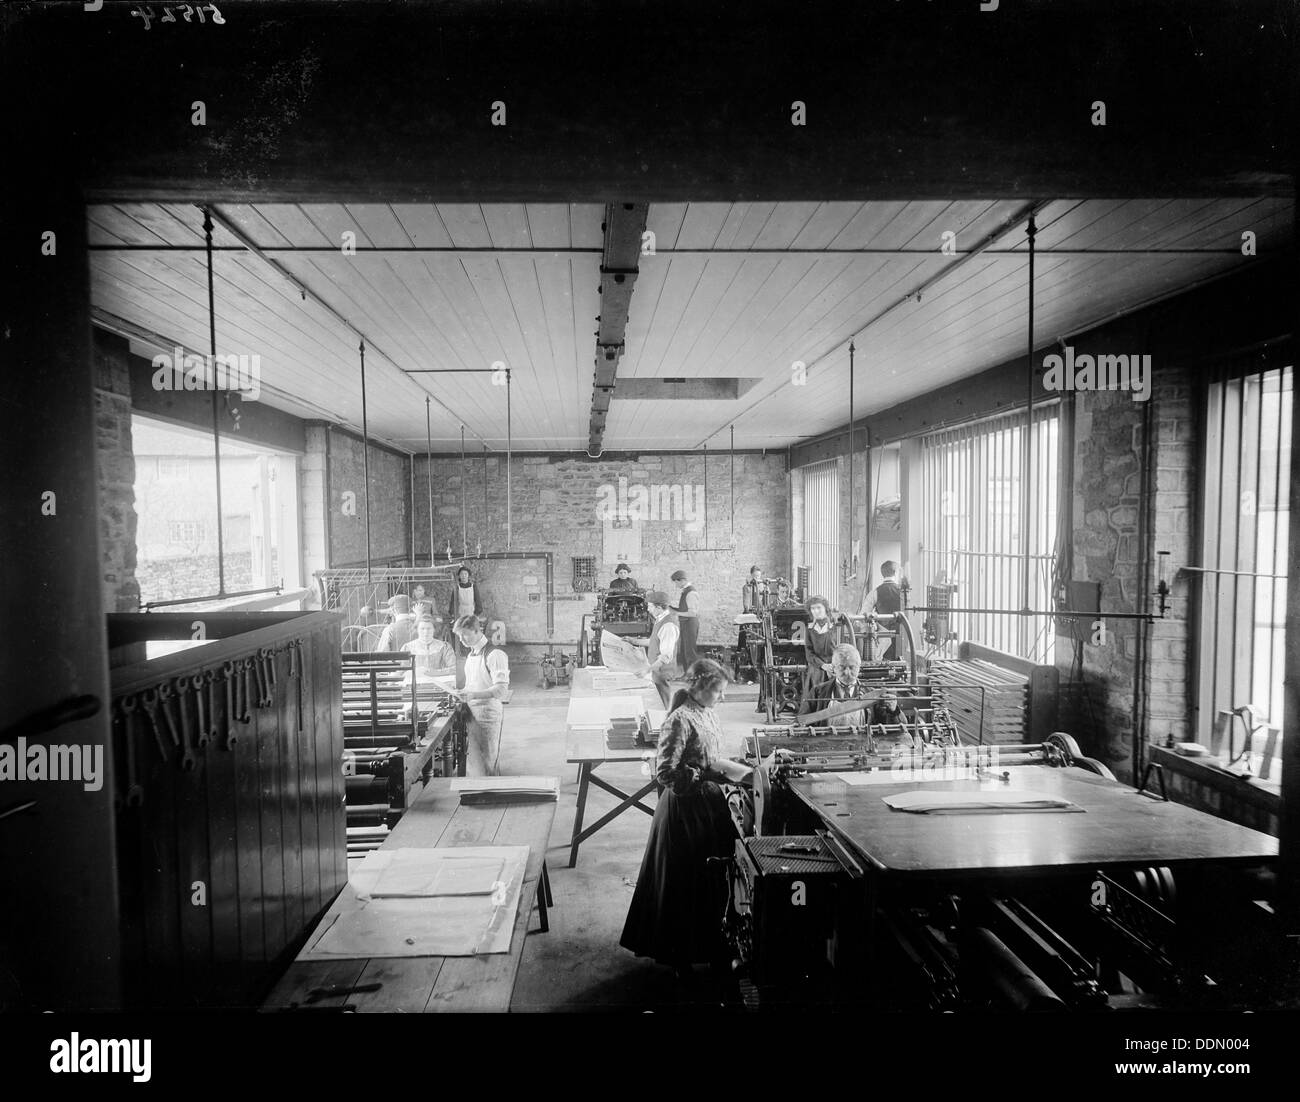 Church Army Press workshop with people at their machines, Oxford, Oxfordshire, c1860-c1922. Artist: Henry Taunt - Stock Image